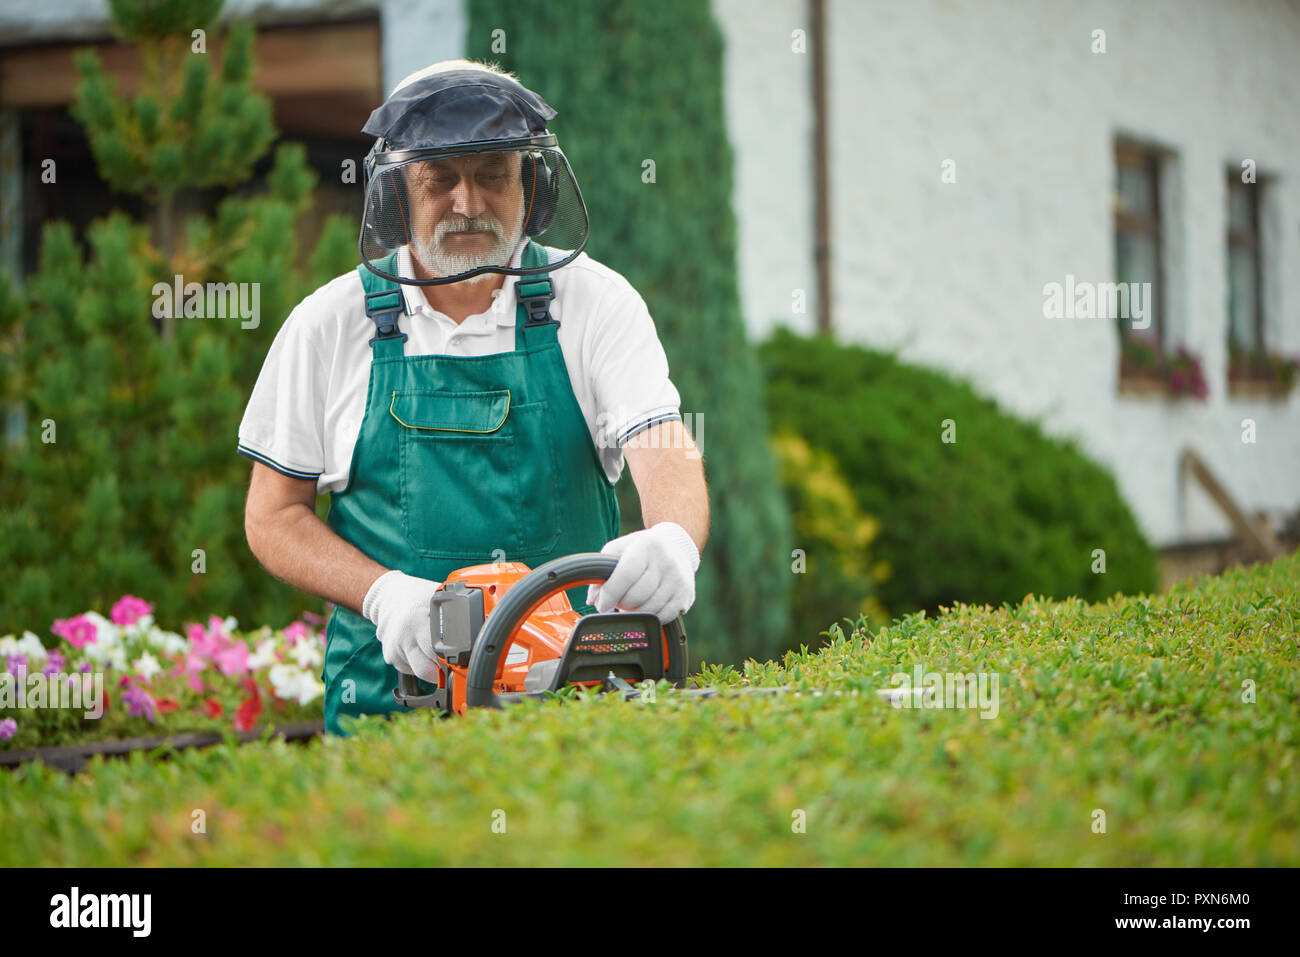 Senior male gardener cutting garden hedge with petrol hedge cutter. Professional garden worker wearing in green uniform and gloves, with safety mask and protective headphones working with clippers. - Stock Image